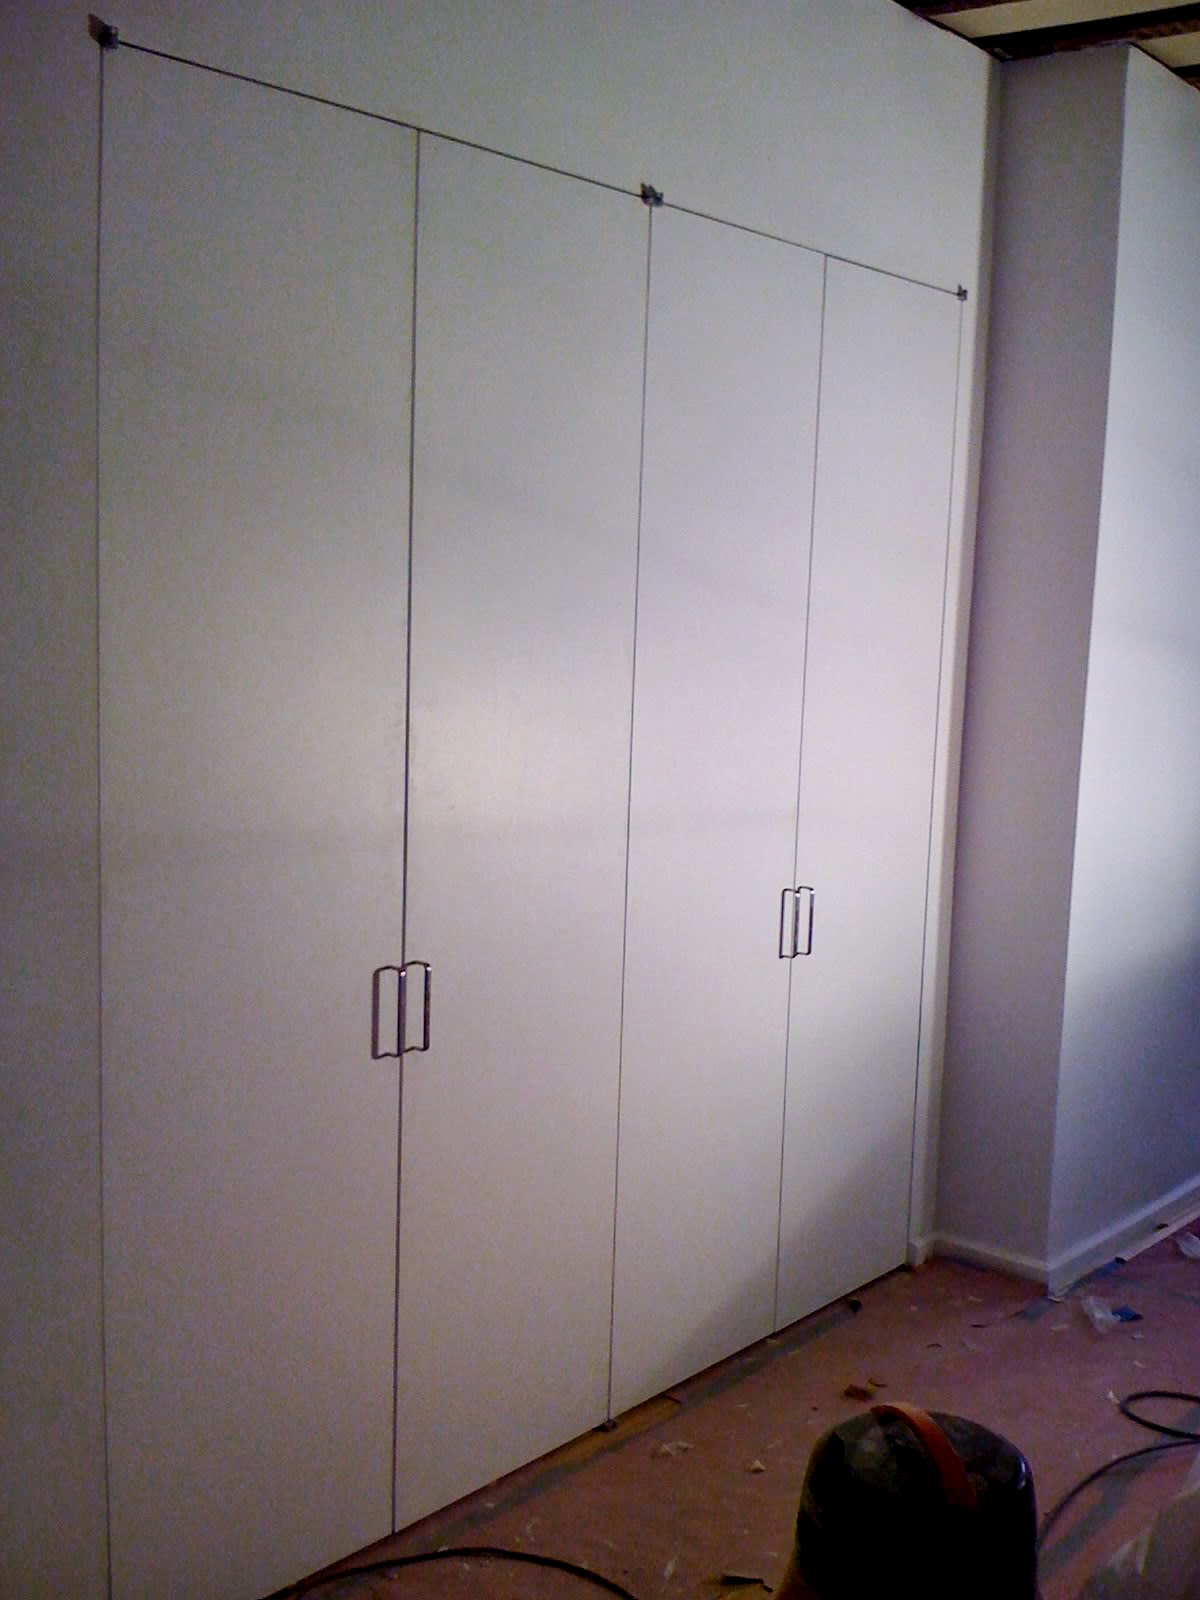 Marvelous Example Of Flush Jamb Closet Doors With Offset Pivot Hinges